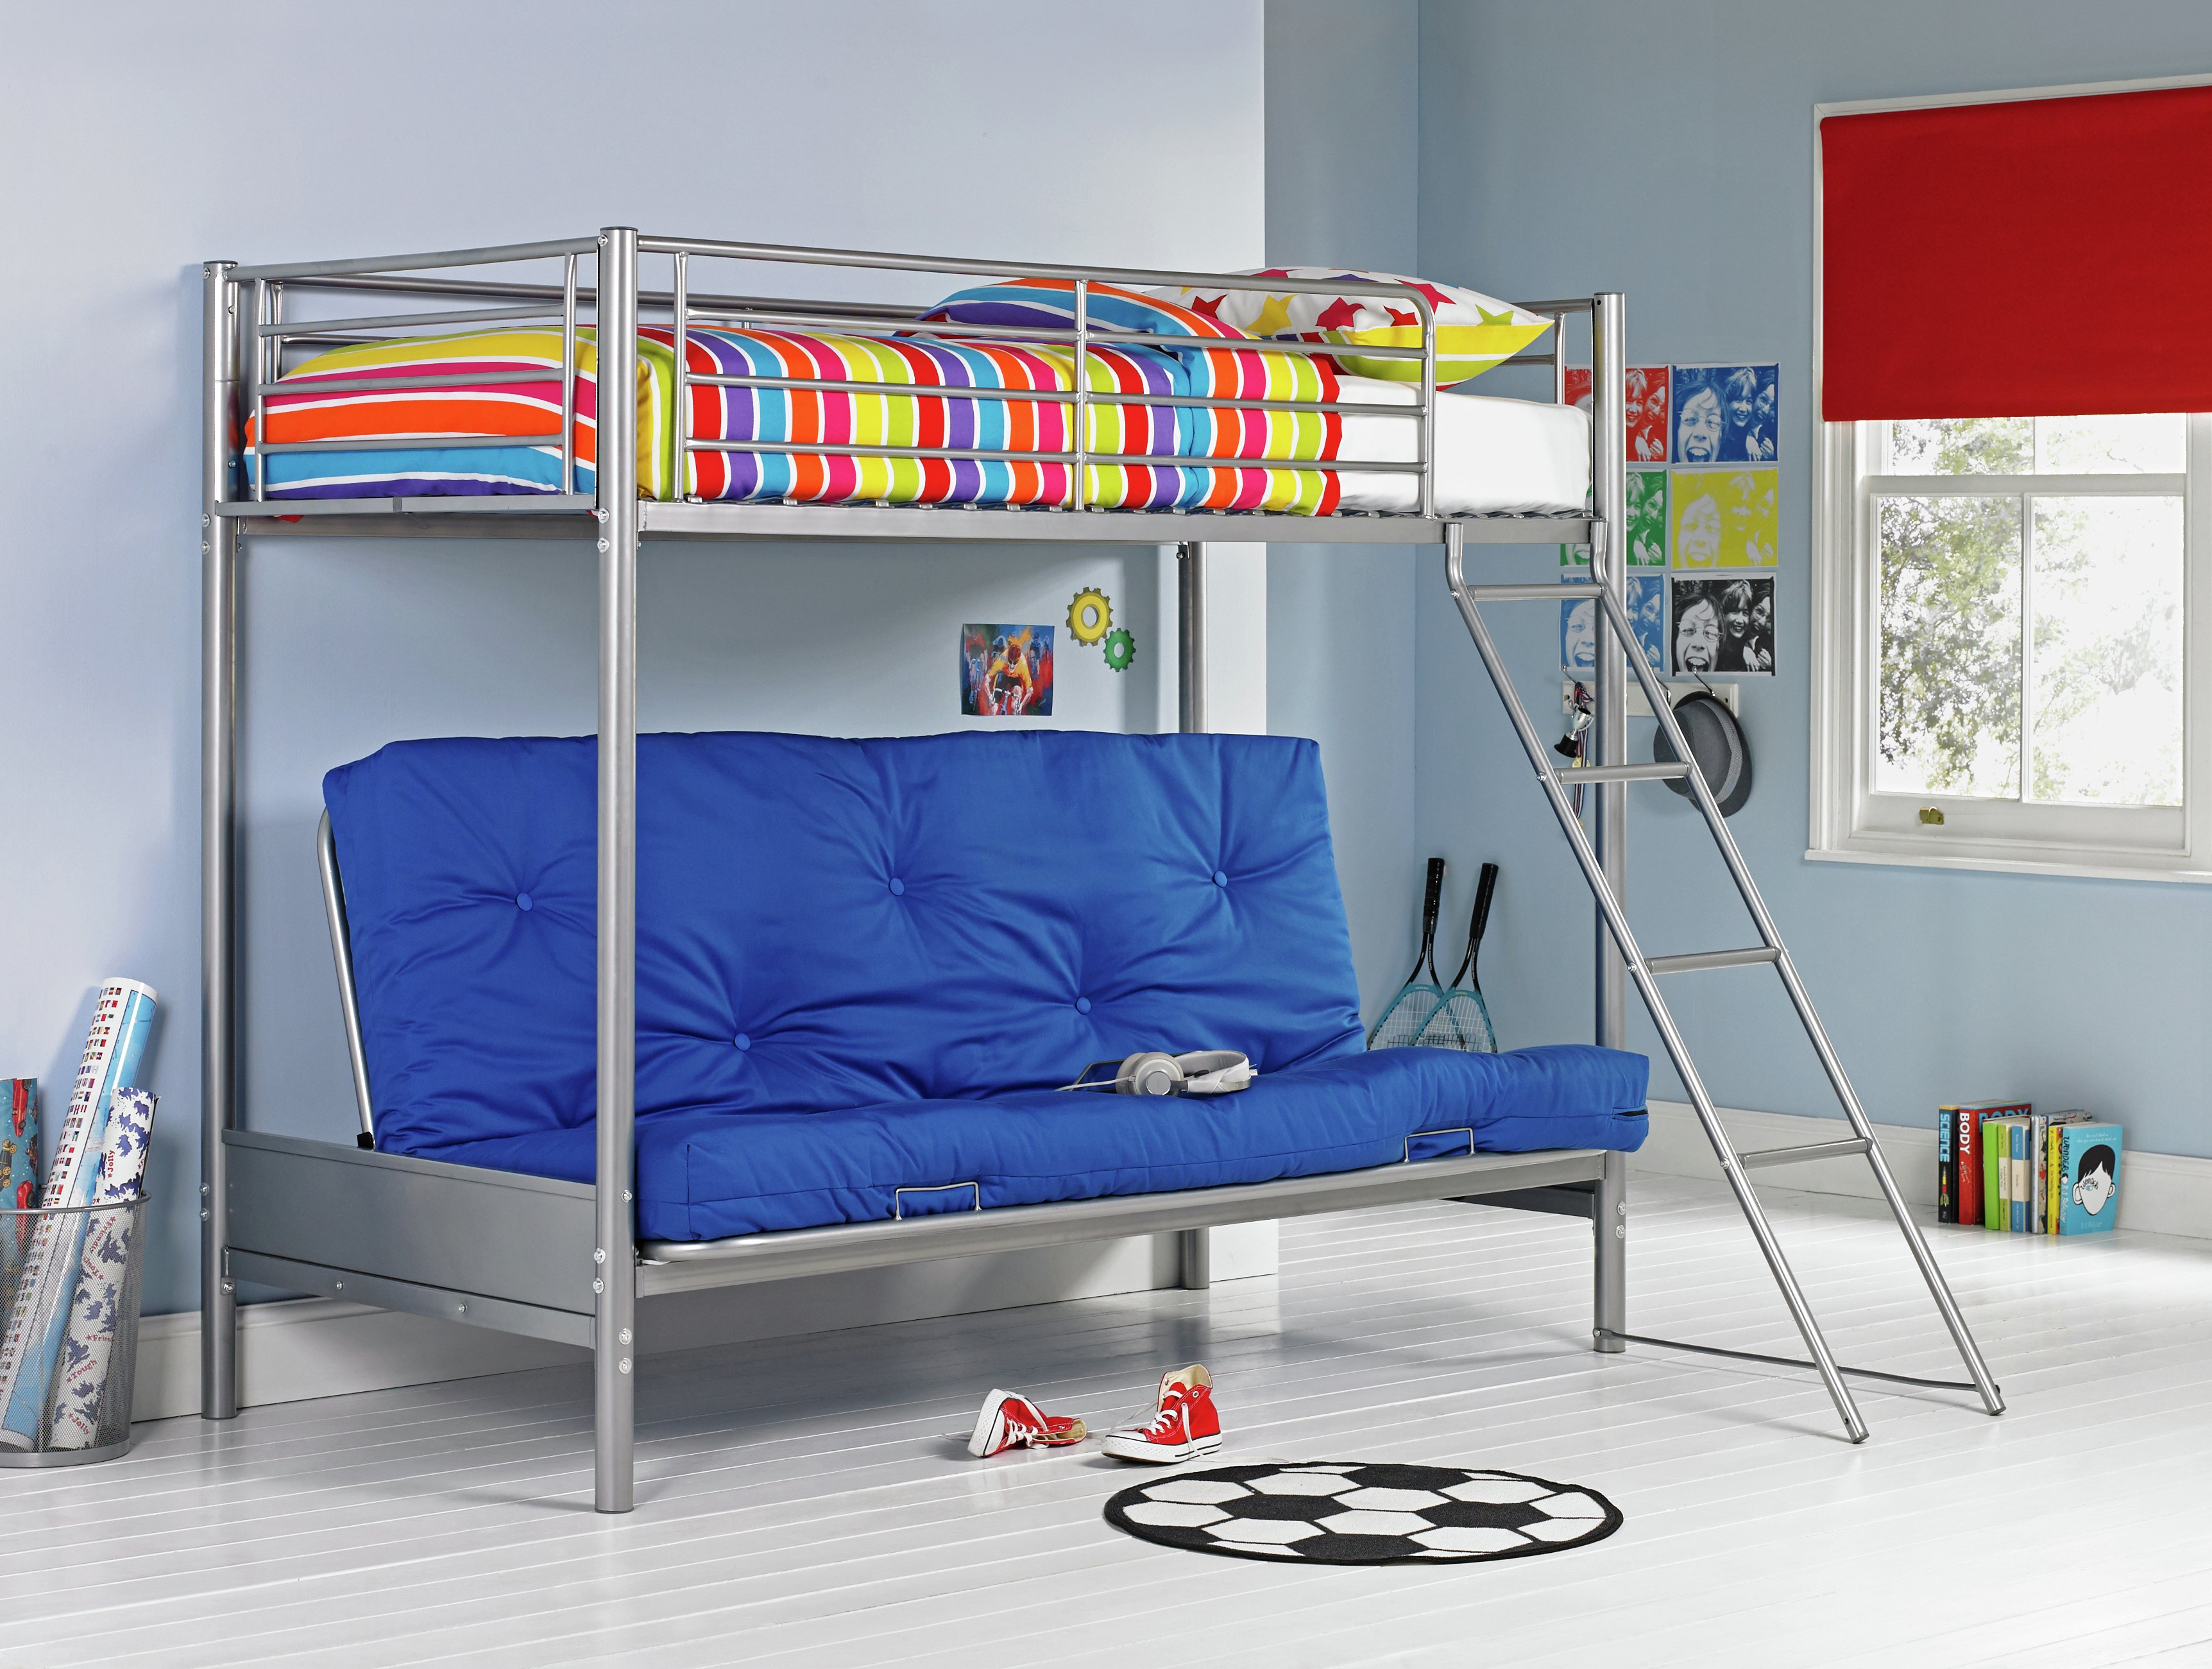 Image of Metal Bunk Bed & Futon with Ashley Mattress - Silver & Blue